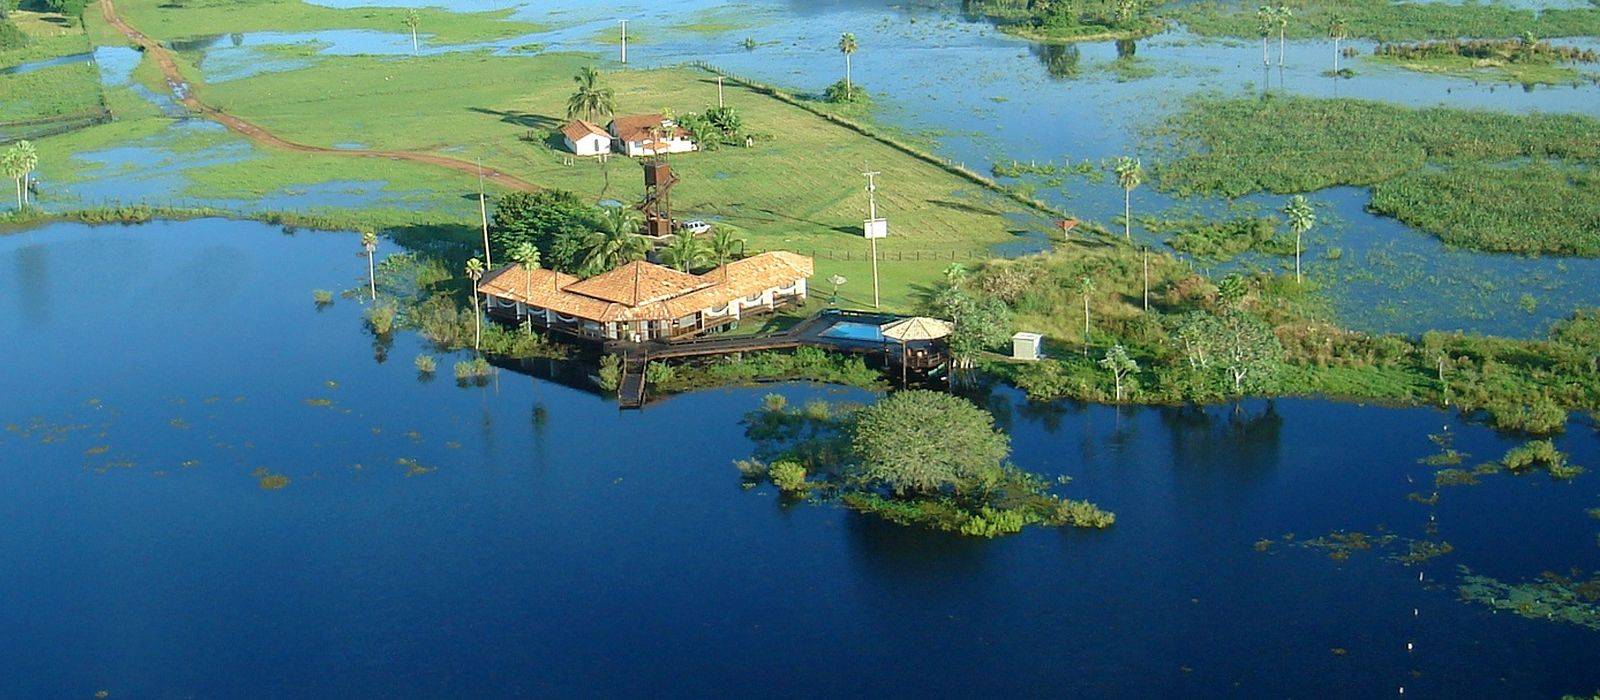 Hotel Caiman Ecological Refuge Baiazinha Lodge Brazil